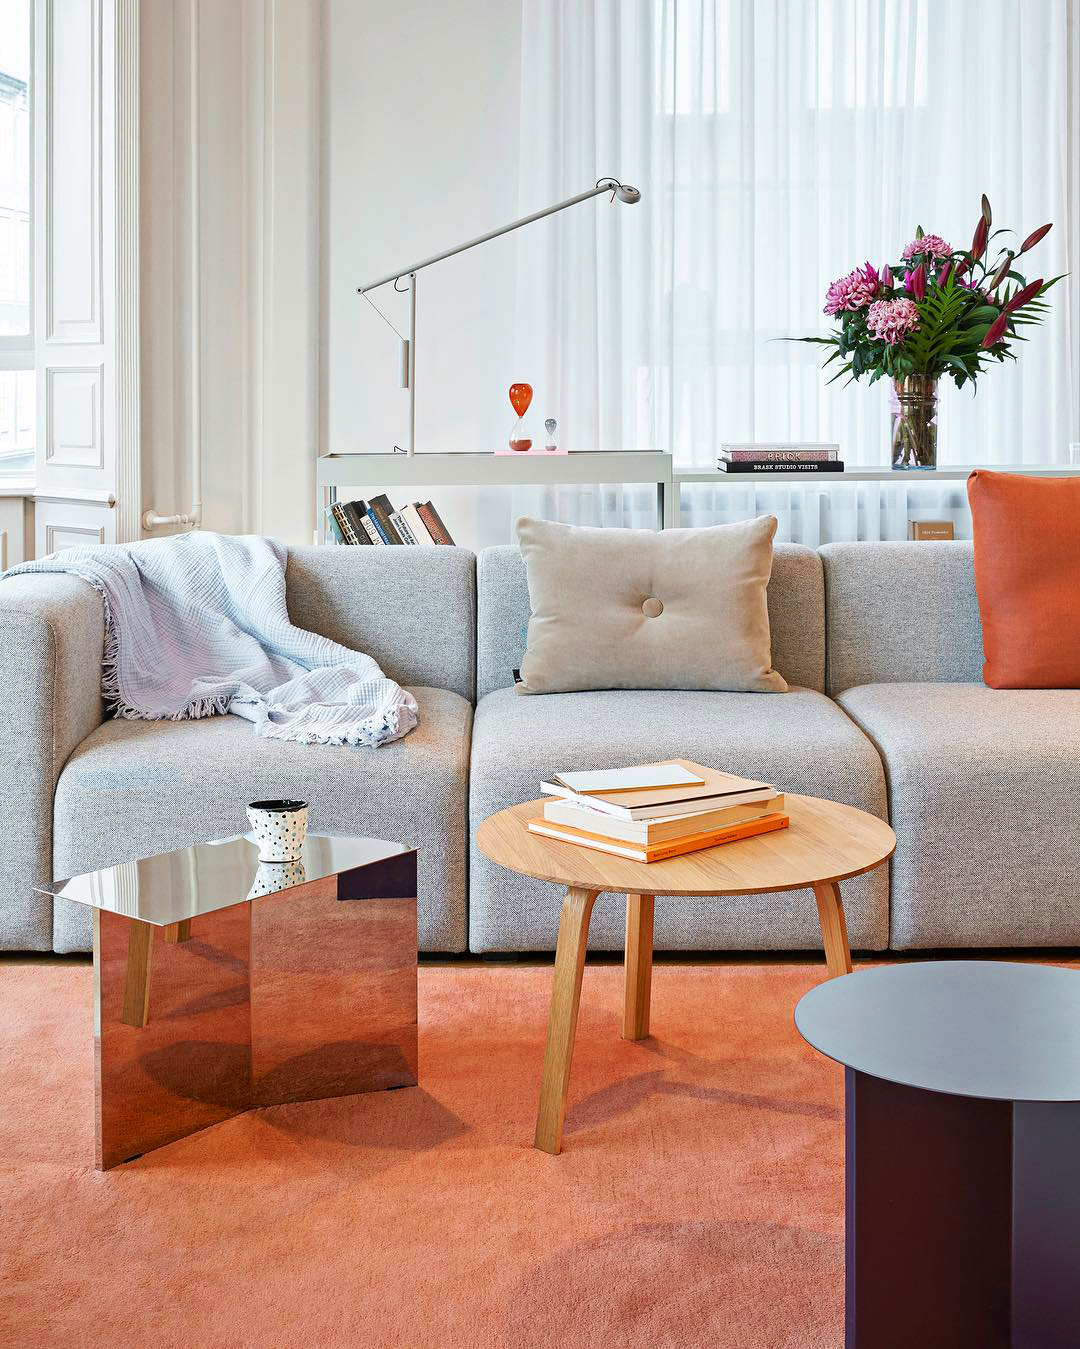 10 Of The Best Furniture Design And Homewares S In